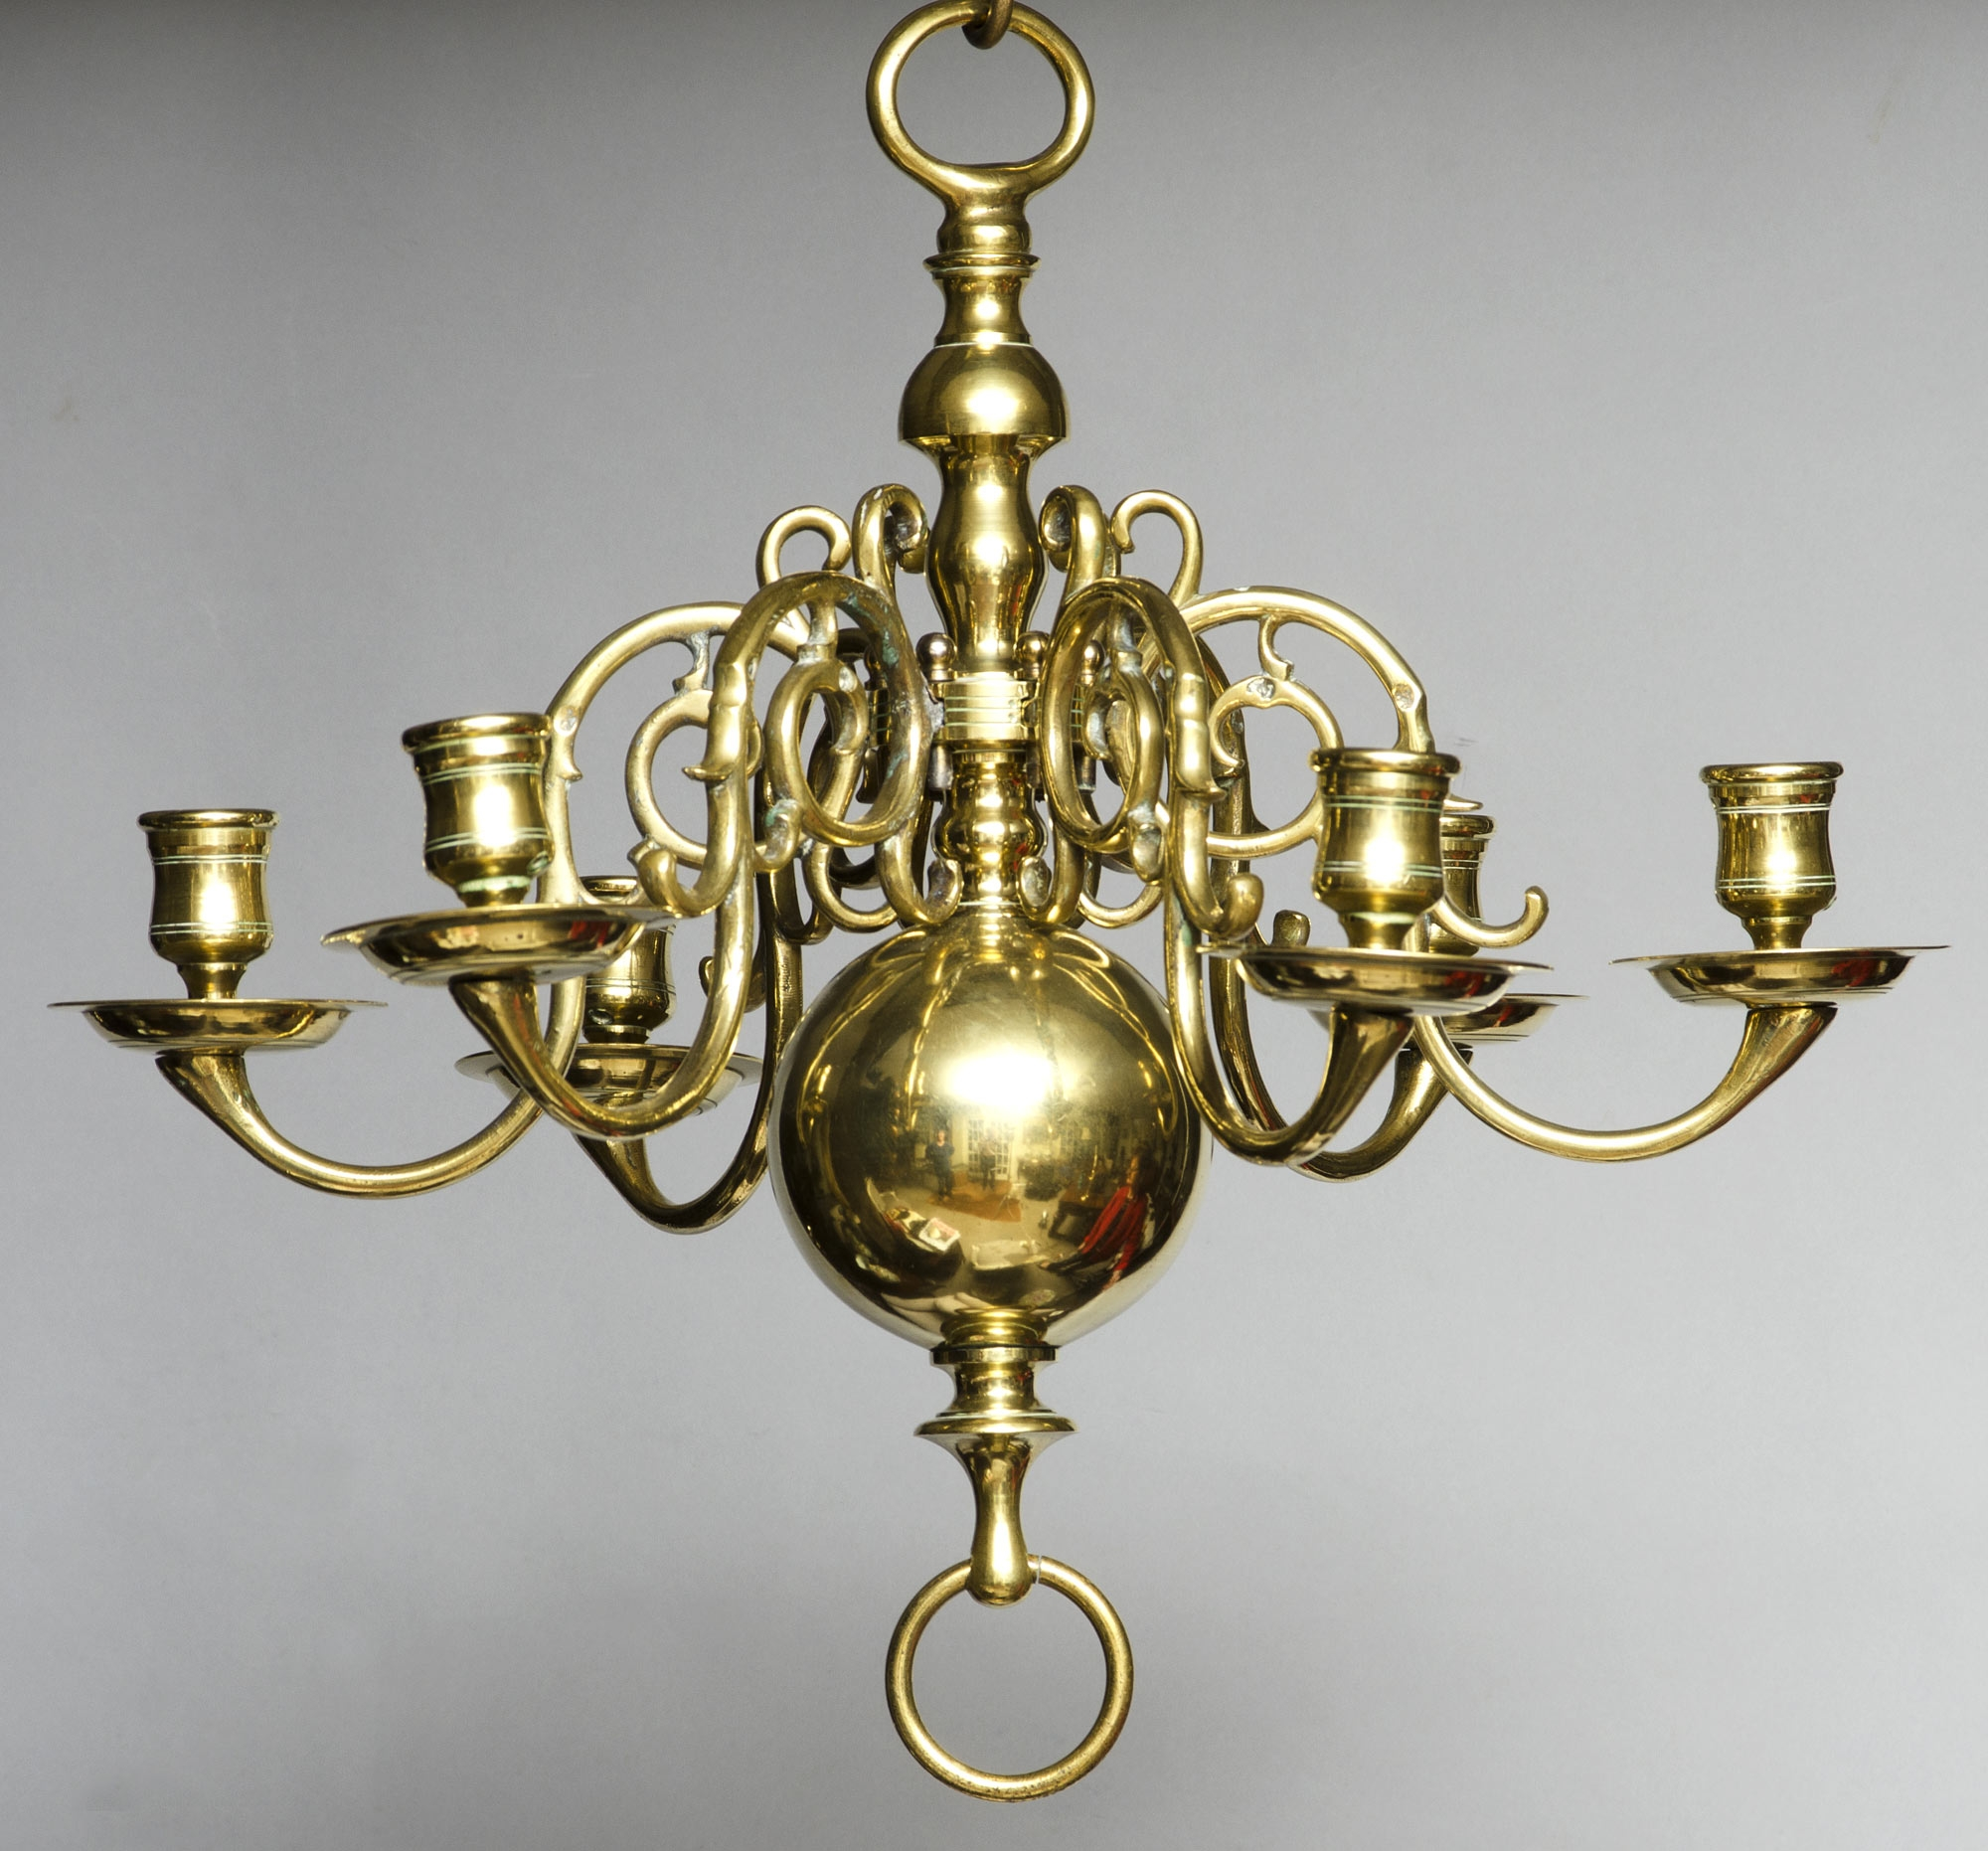 Brass Chandelier Vintage For Your Decorating Home Ideas With Brass Intended For Vintage Brass Chandeliers (Image 3 of 15)